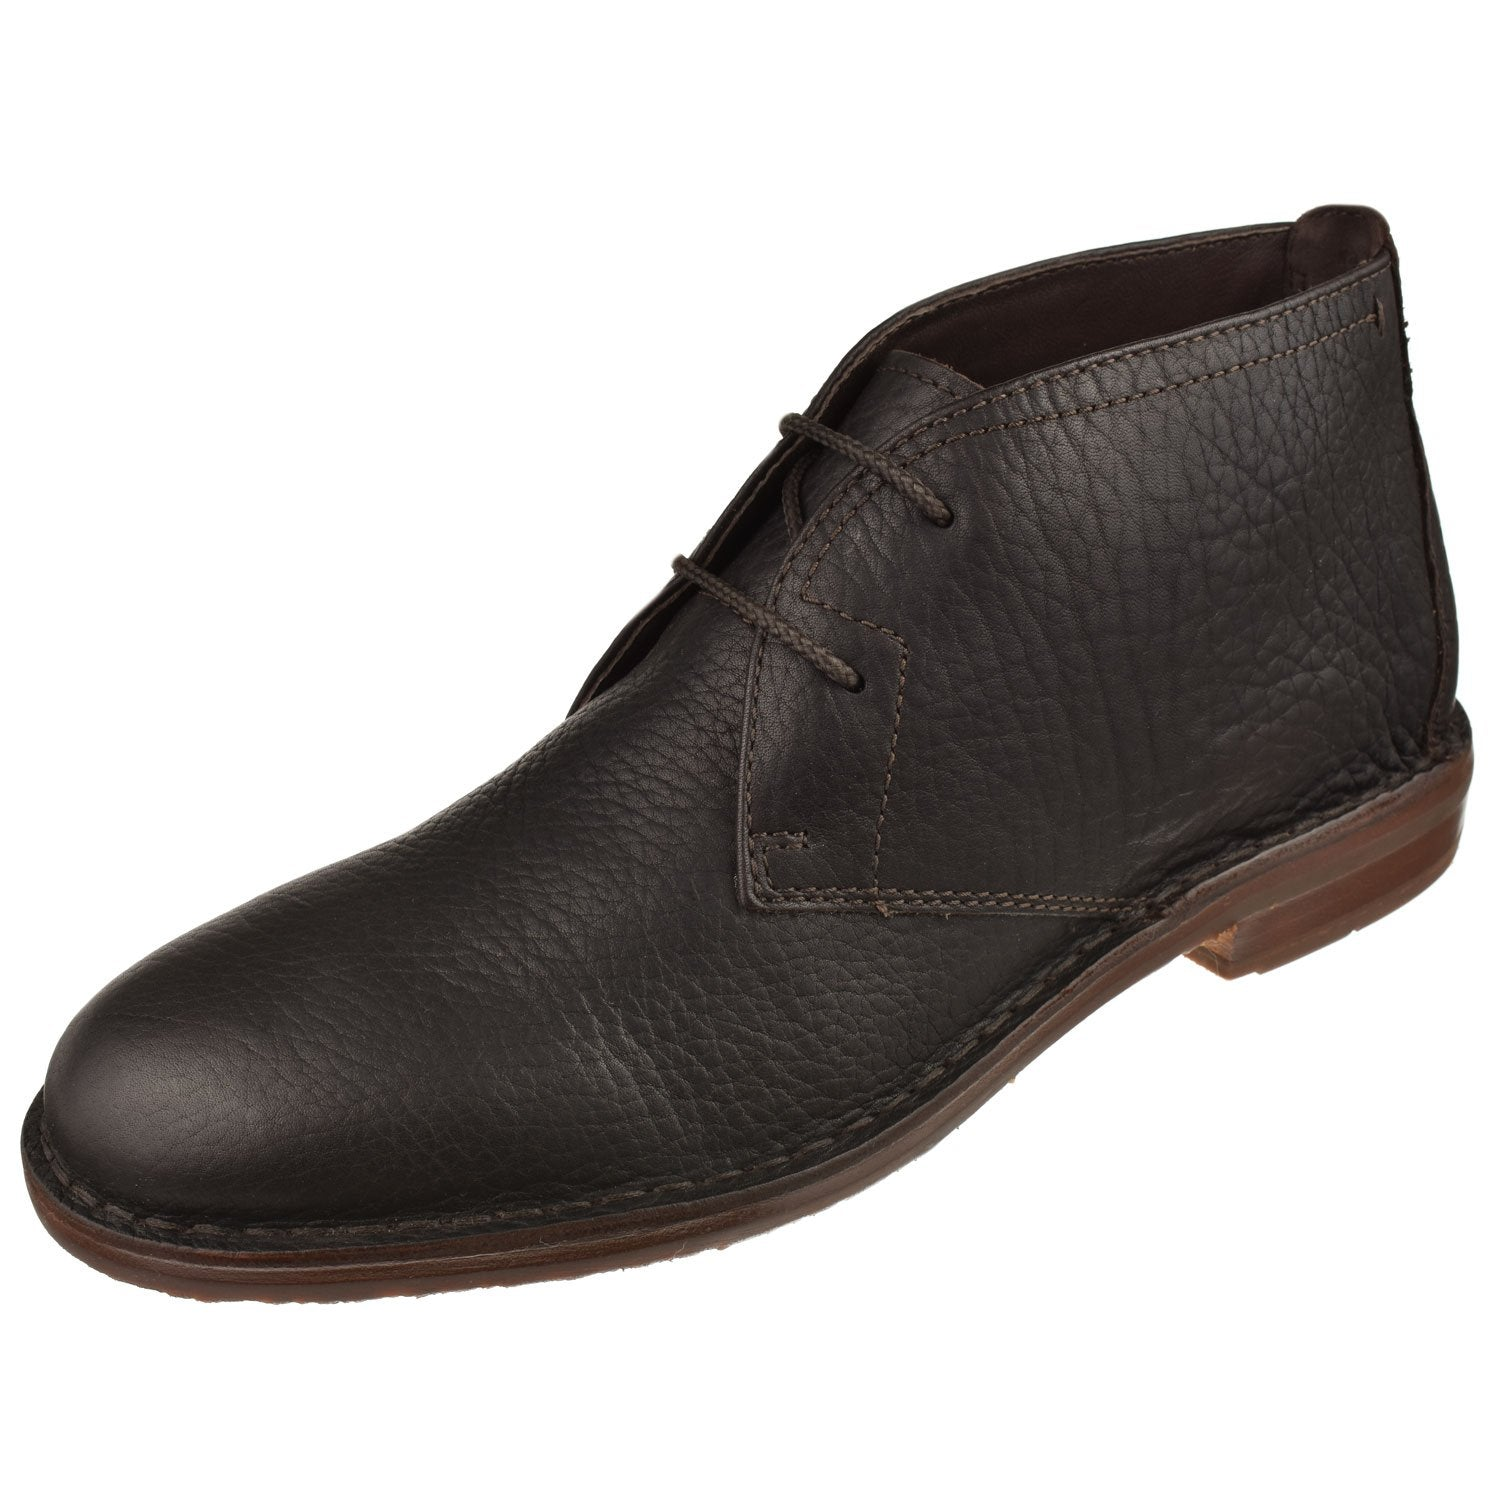 Men's Brady Chukka Boot - Oak Hall